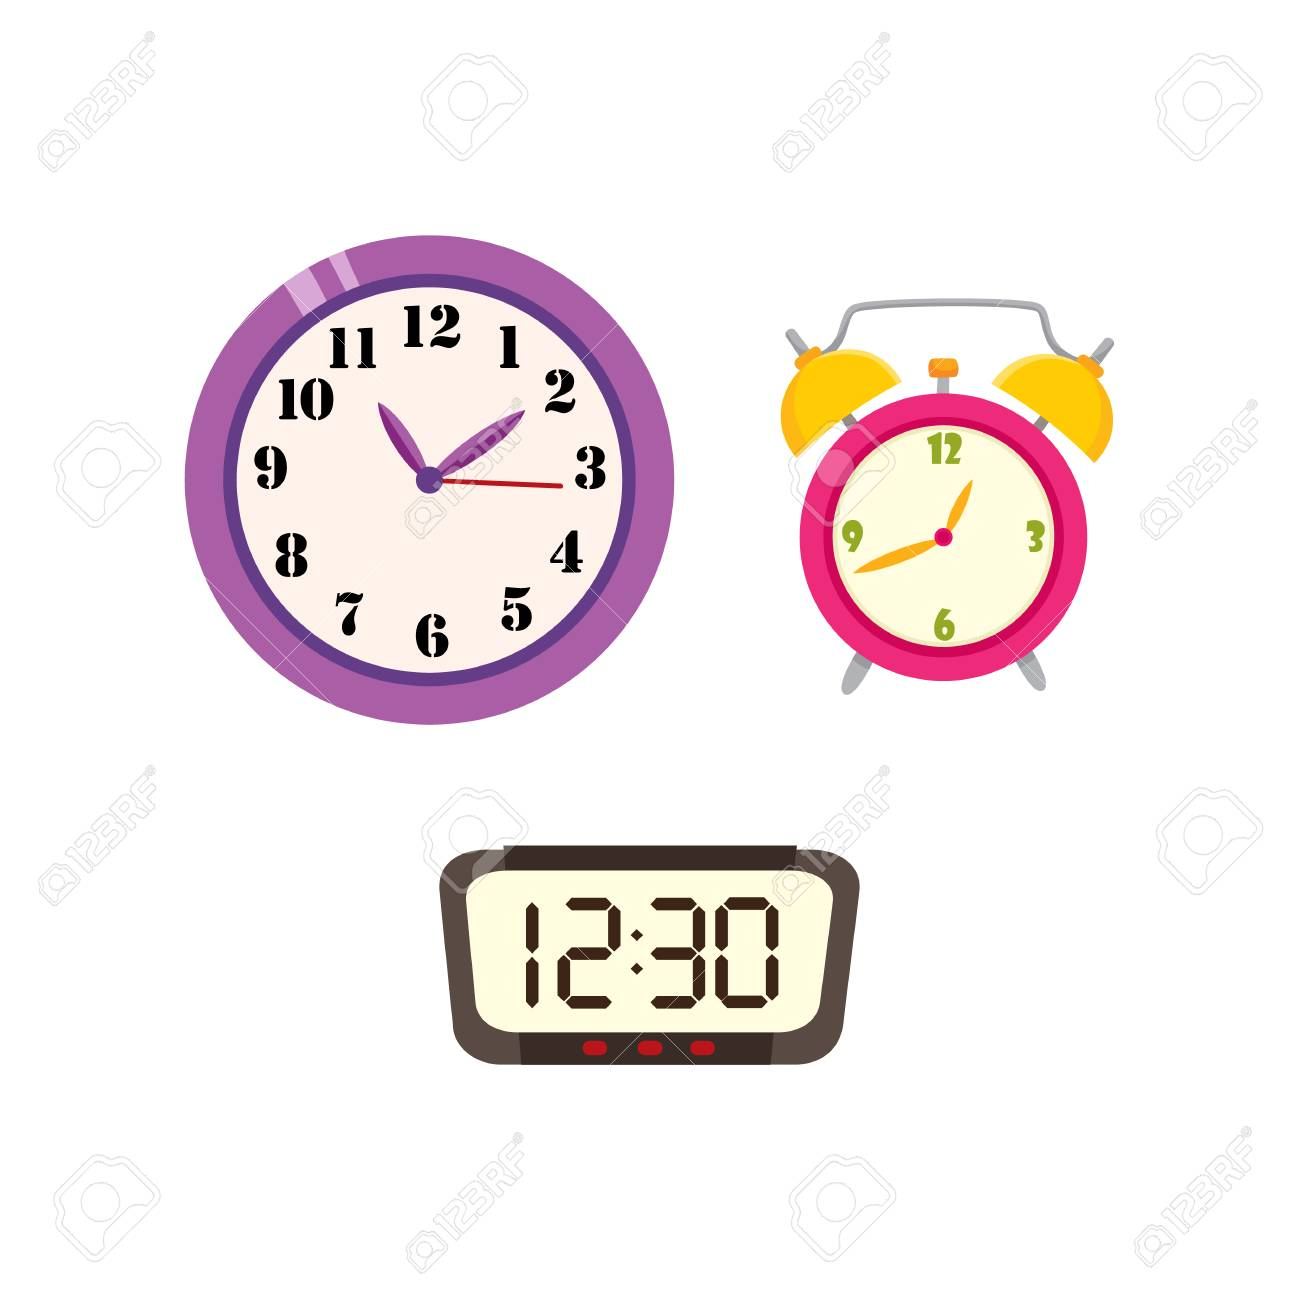 Simple Modern Alarm Clock Flat Vector Analog Wall Mounted Round Clock Digital Rectangle